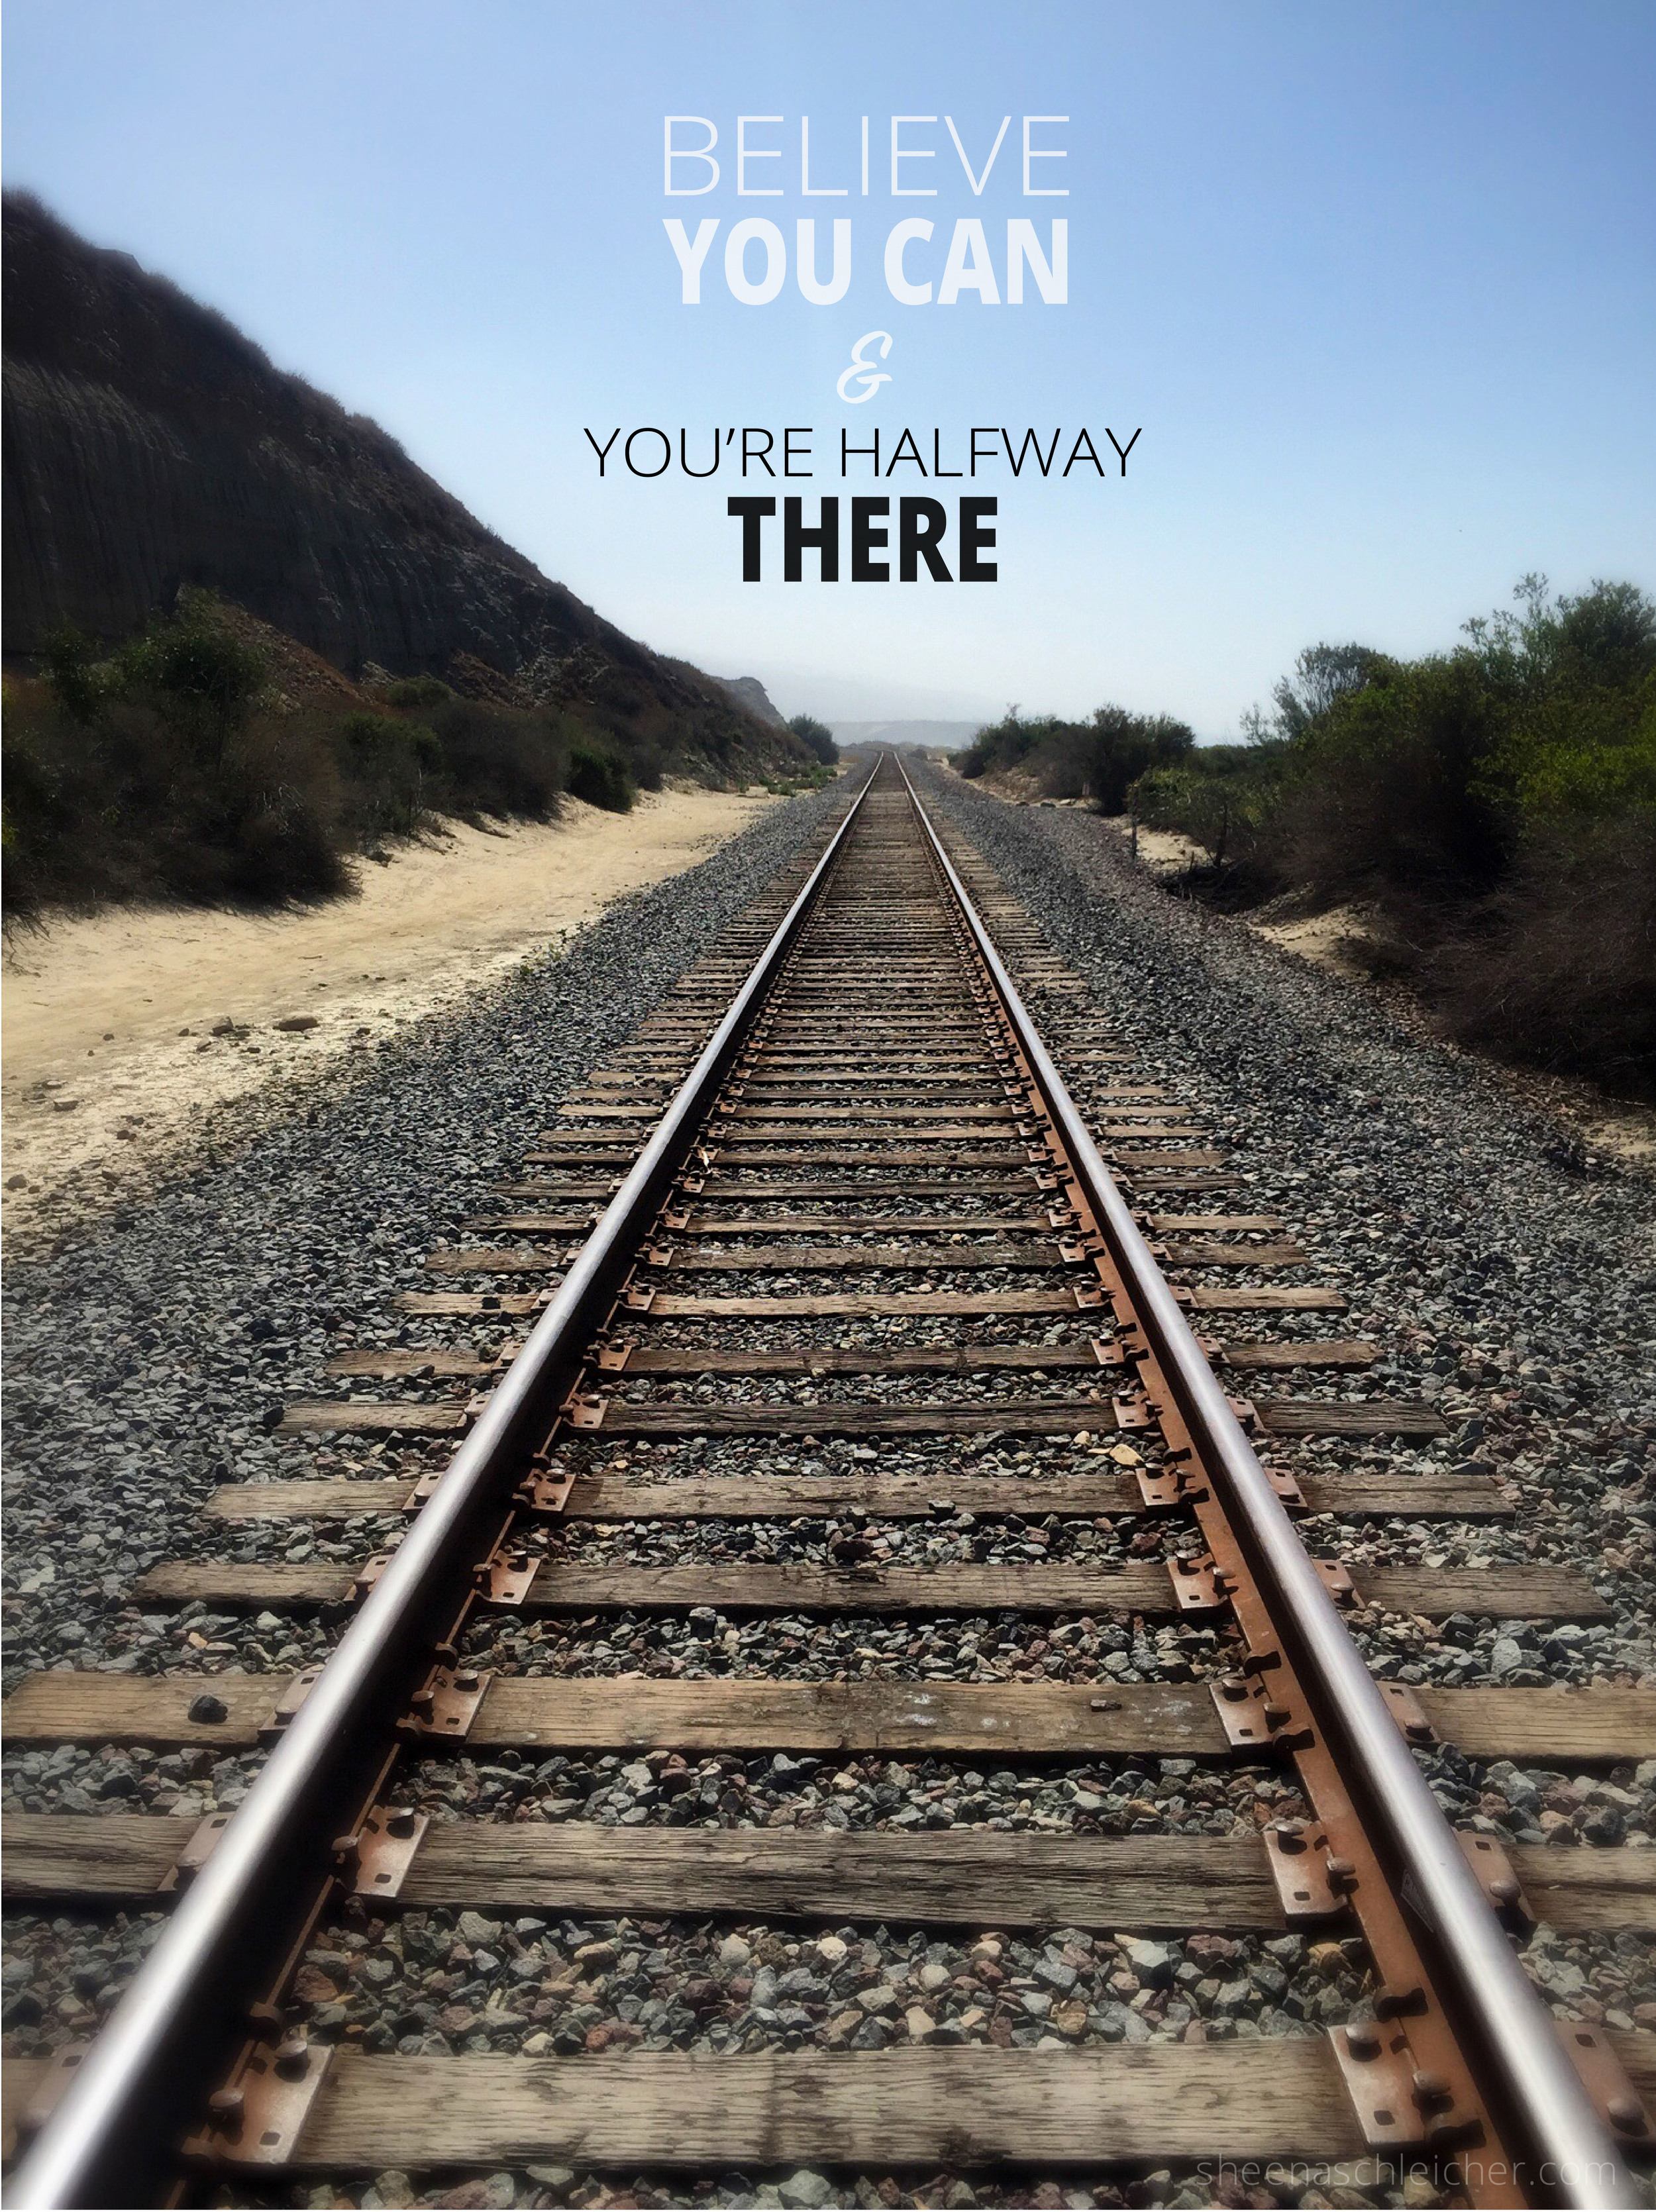 Believe you can! #life #quote #railroadtrack